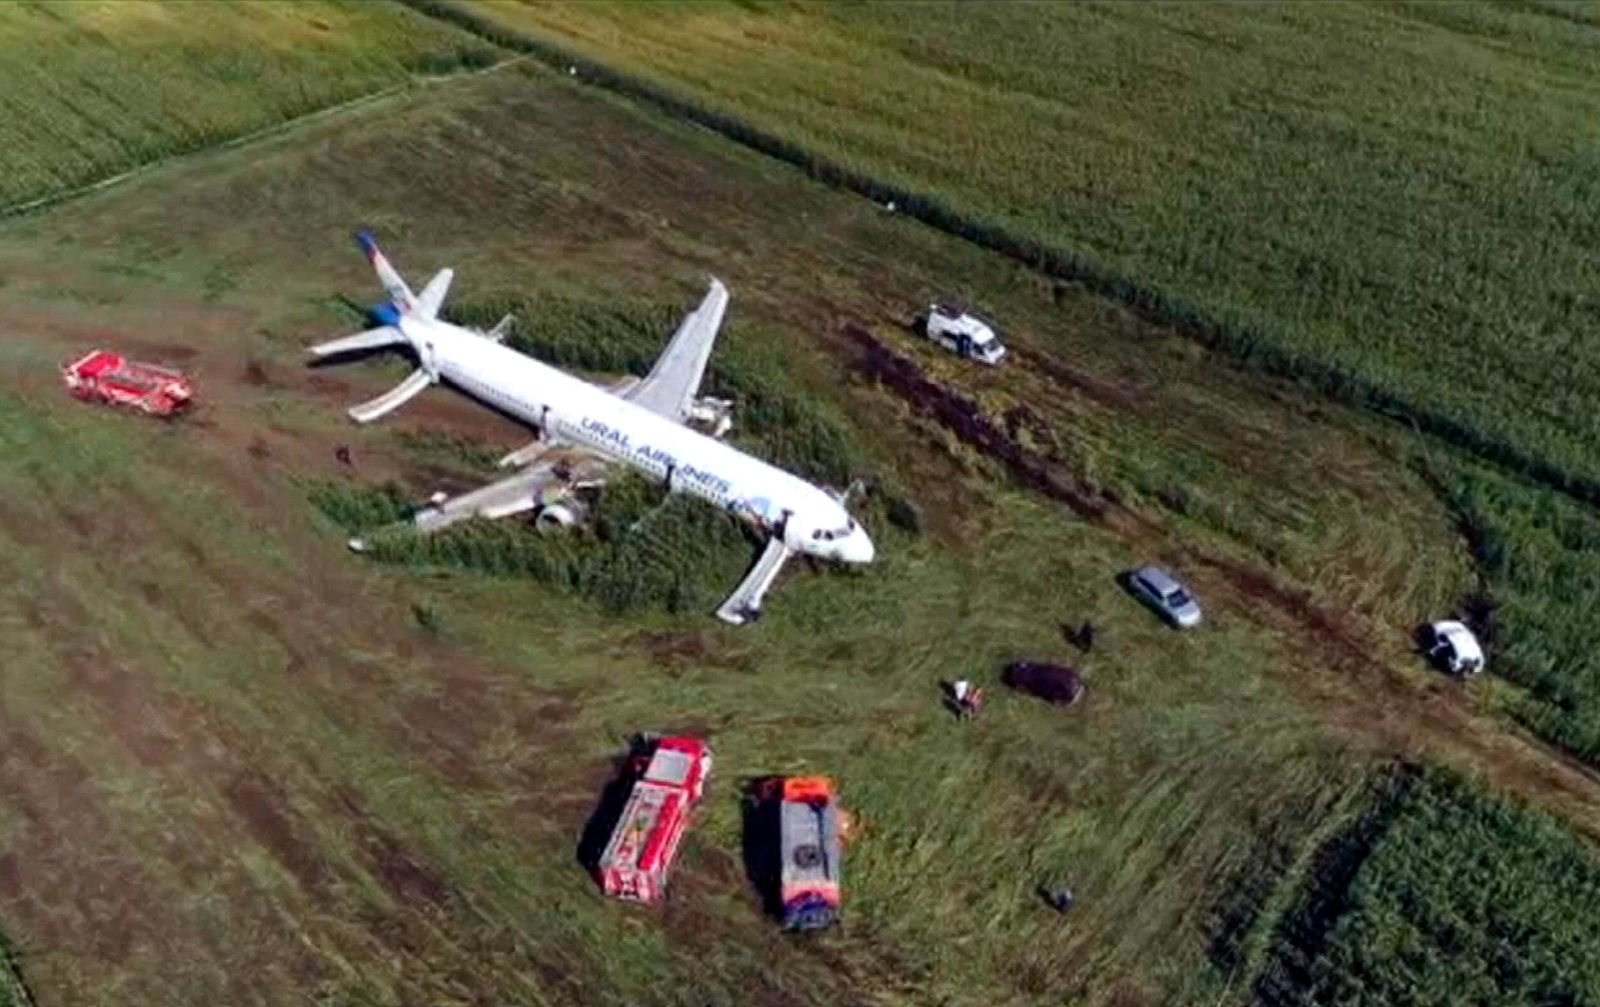 In this video grab provided by the RU-RTR Russian television, a Russian Ural Airlines' A321 plane is seen after an emergency landing in a cornfield near Ramenskoye, outside Moscow, Russia, Thursday, Aug. 15, 2019.{ } (RU-RTR Russian Television via AP)